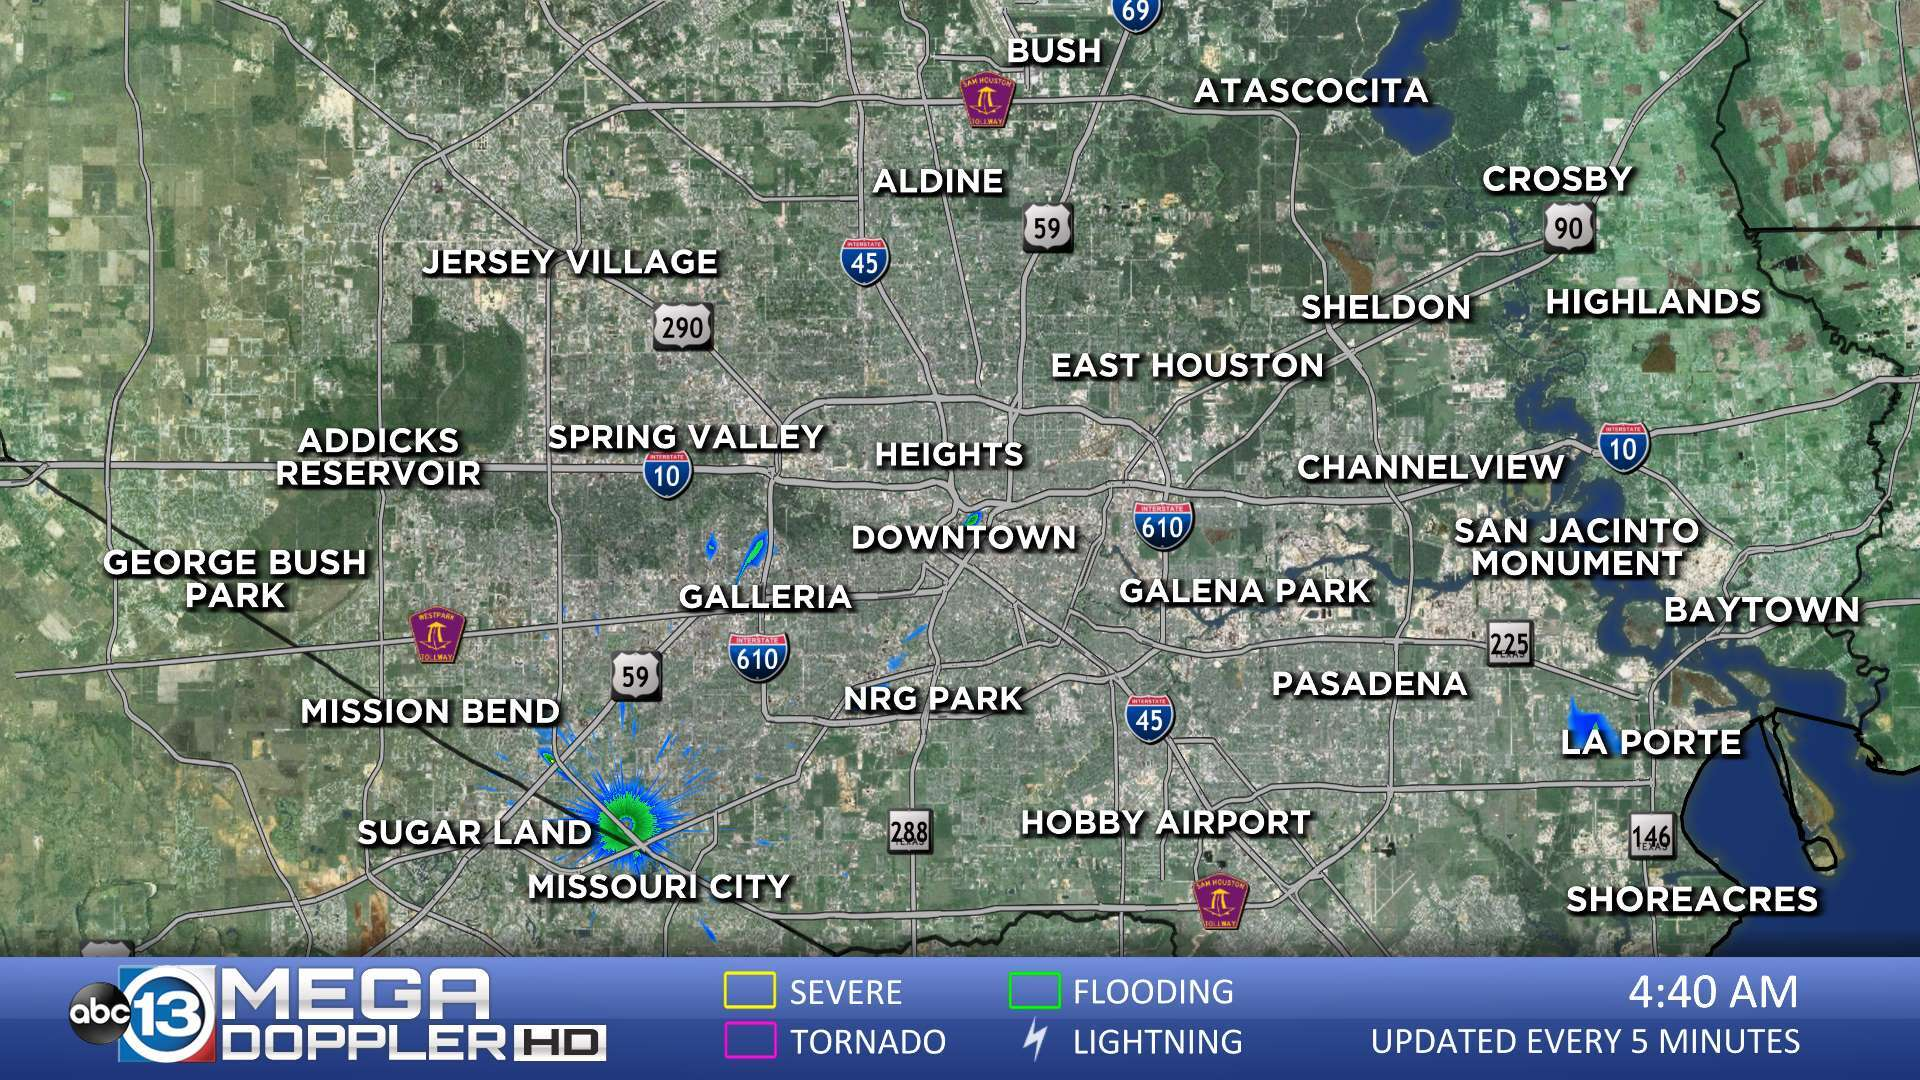 Southeast Texas Radar | abc13.com on storm map, temperature map, live wallpaper map, climate map, global warming map, wind map, geologic map, pressure map, flight map, forecast map, precipitation map, monsoon map, messenger map, traffic map, ohio river valley map, history map, biome map, land use map, drought map, city map,